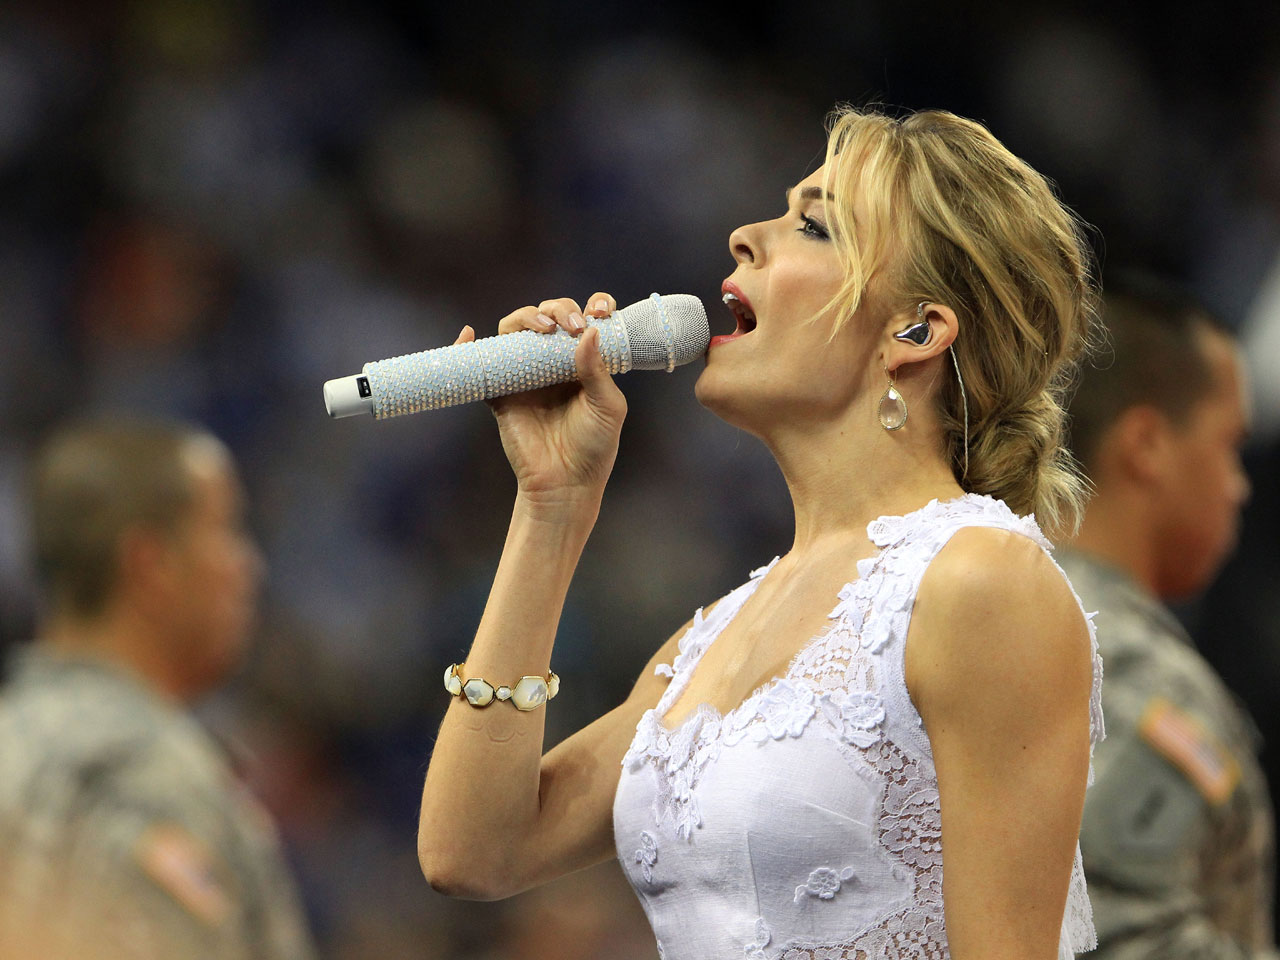 LeAnn Rimes, Dougherty Valley Center, San Ramon, CA